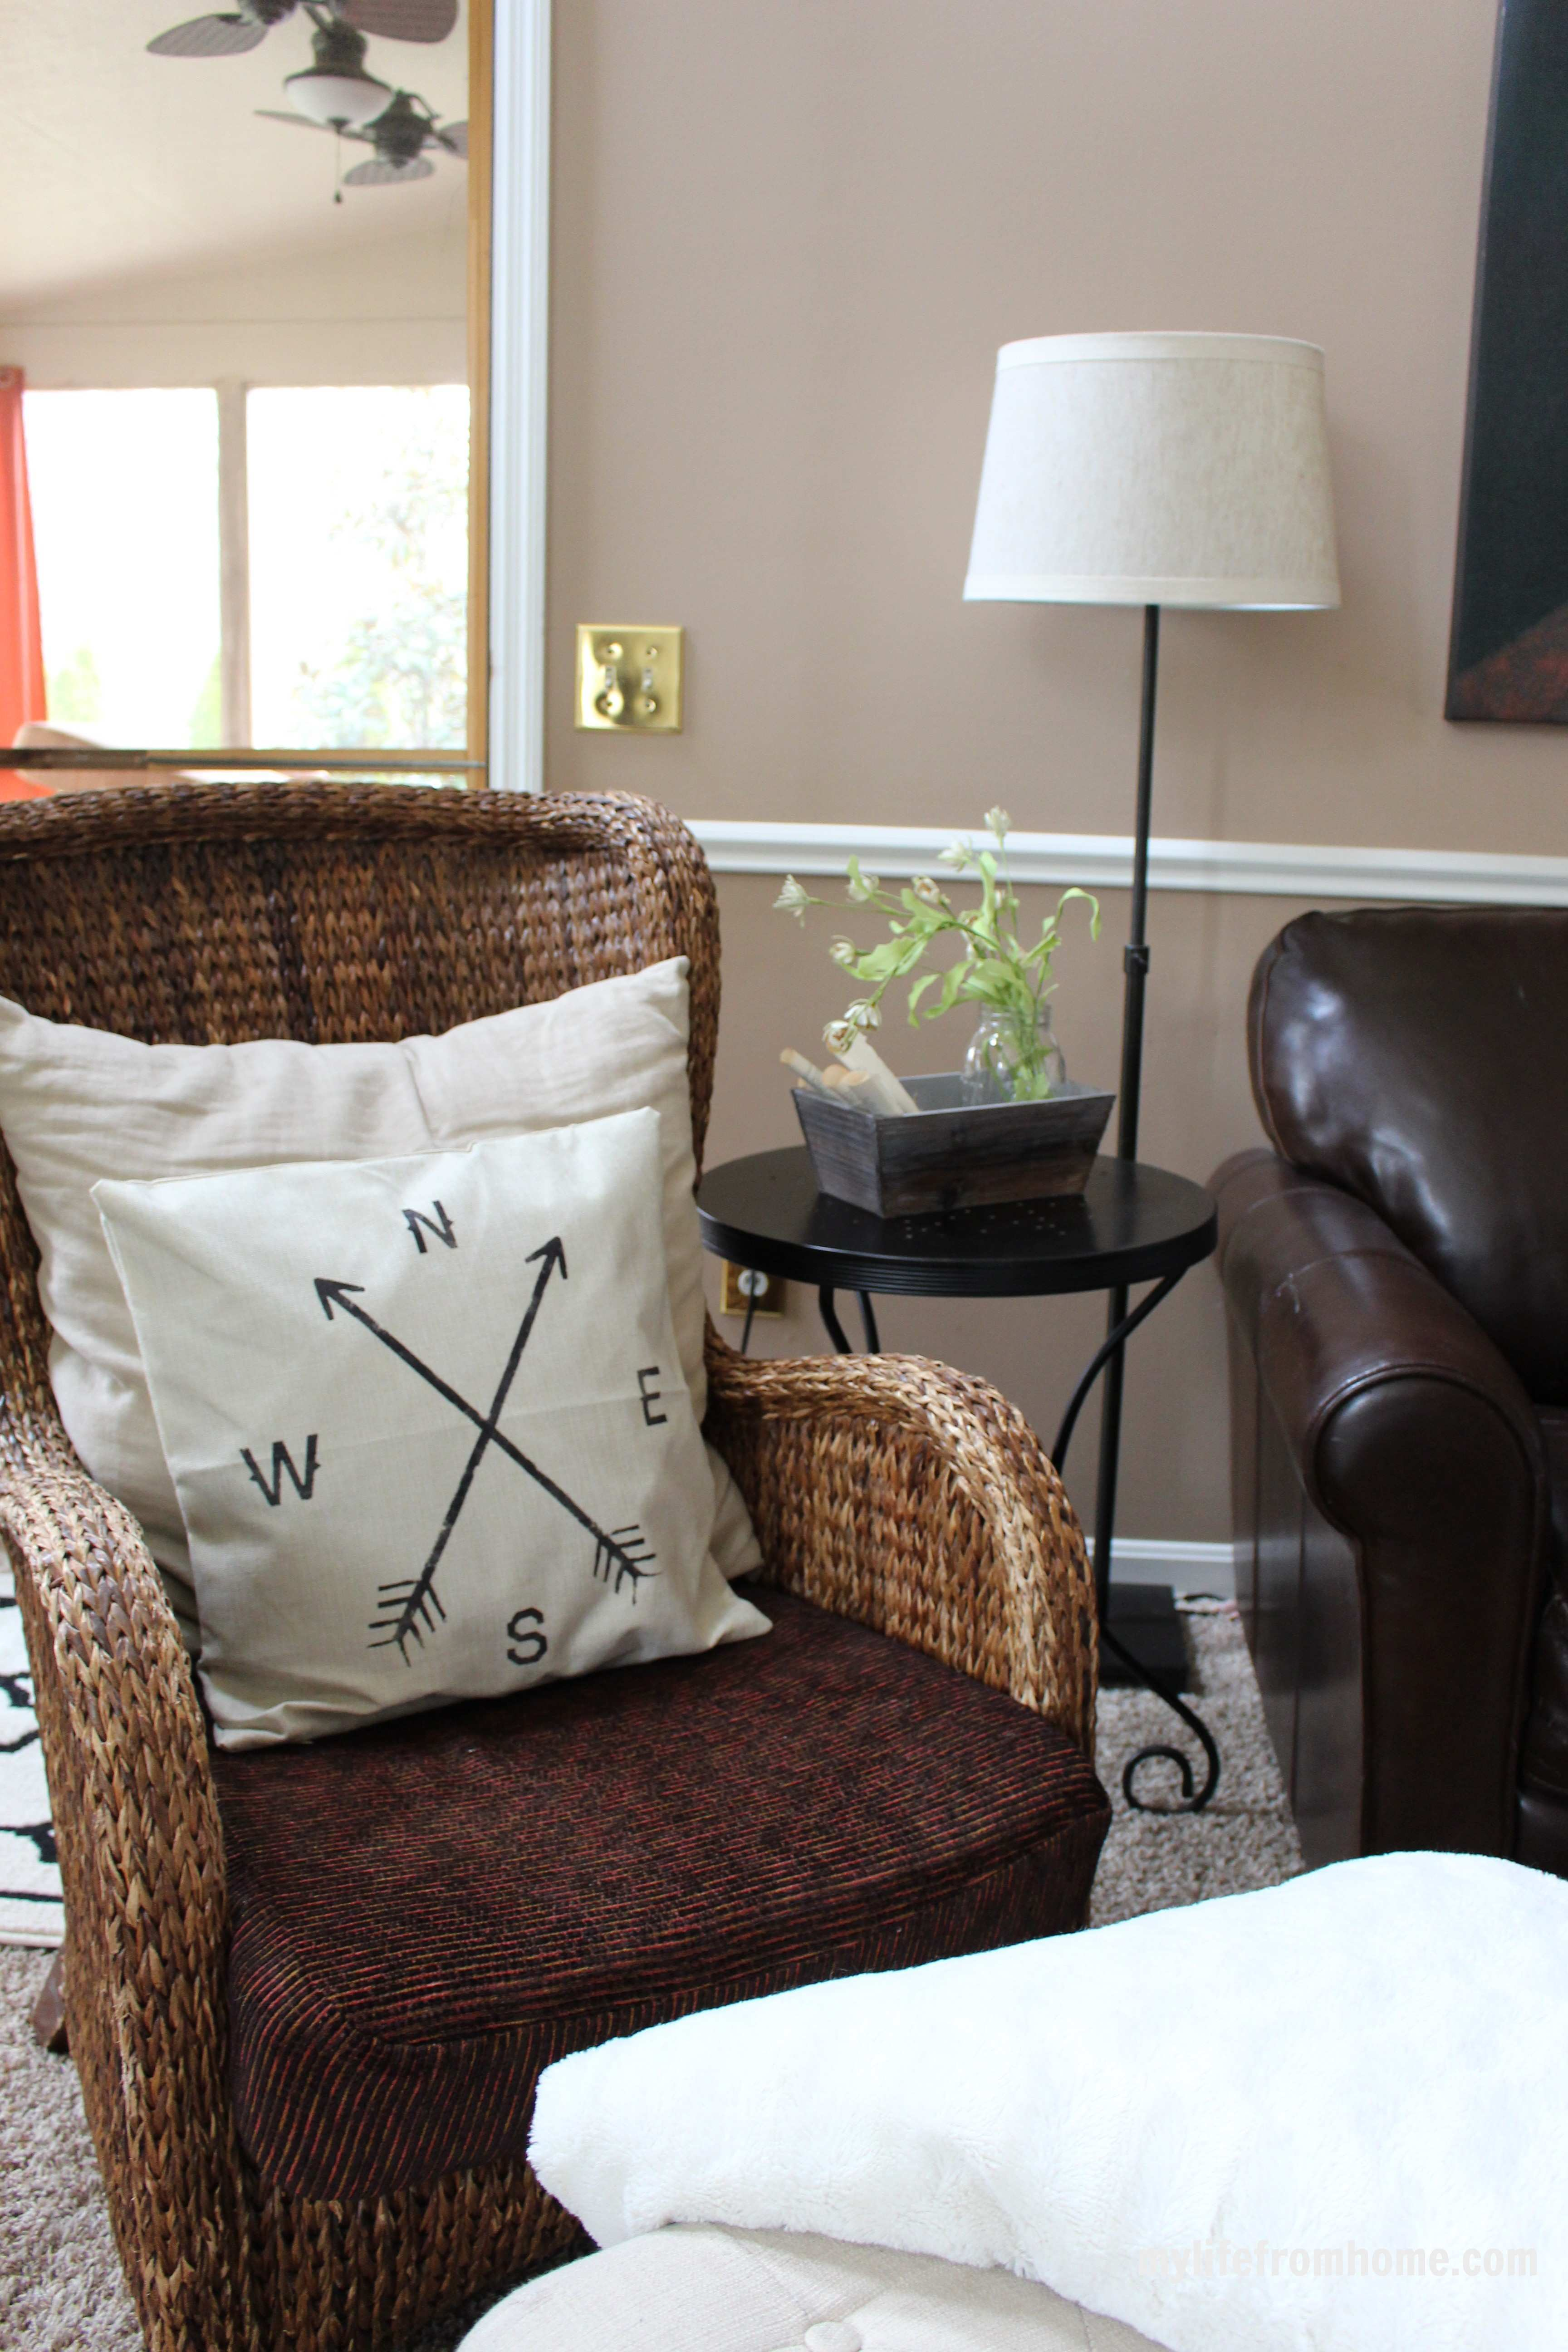 Spring Home Tour by www.mylifefromhome.com